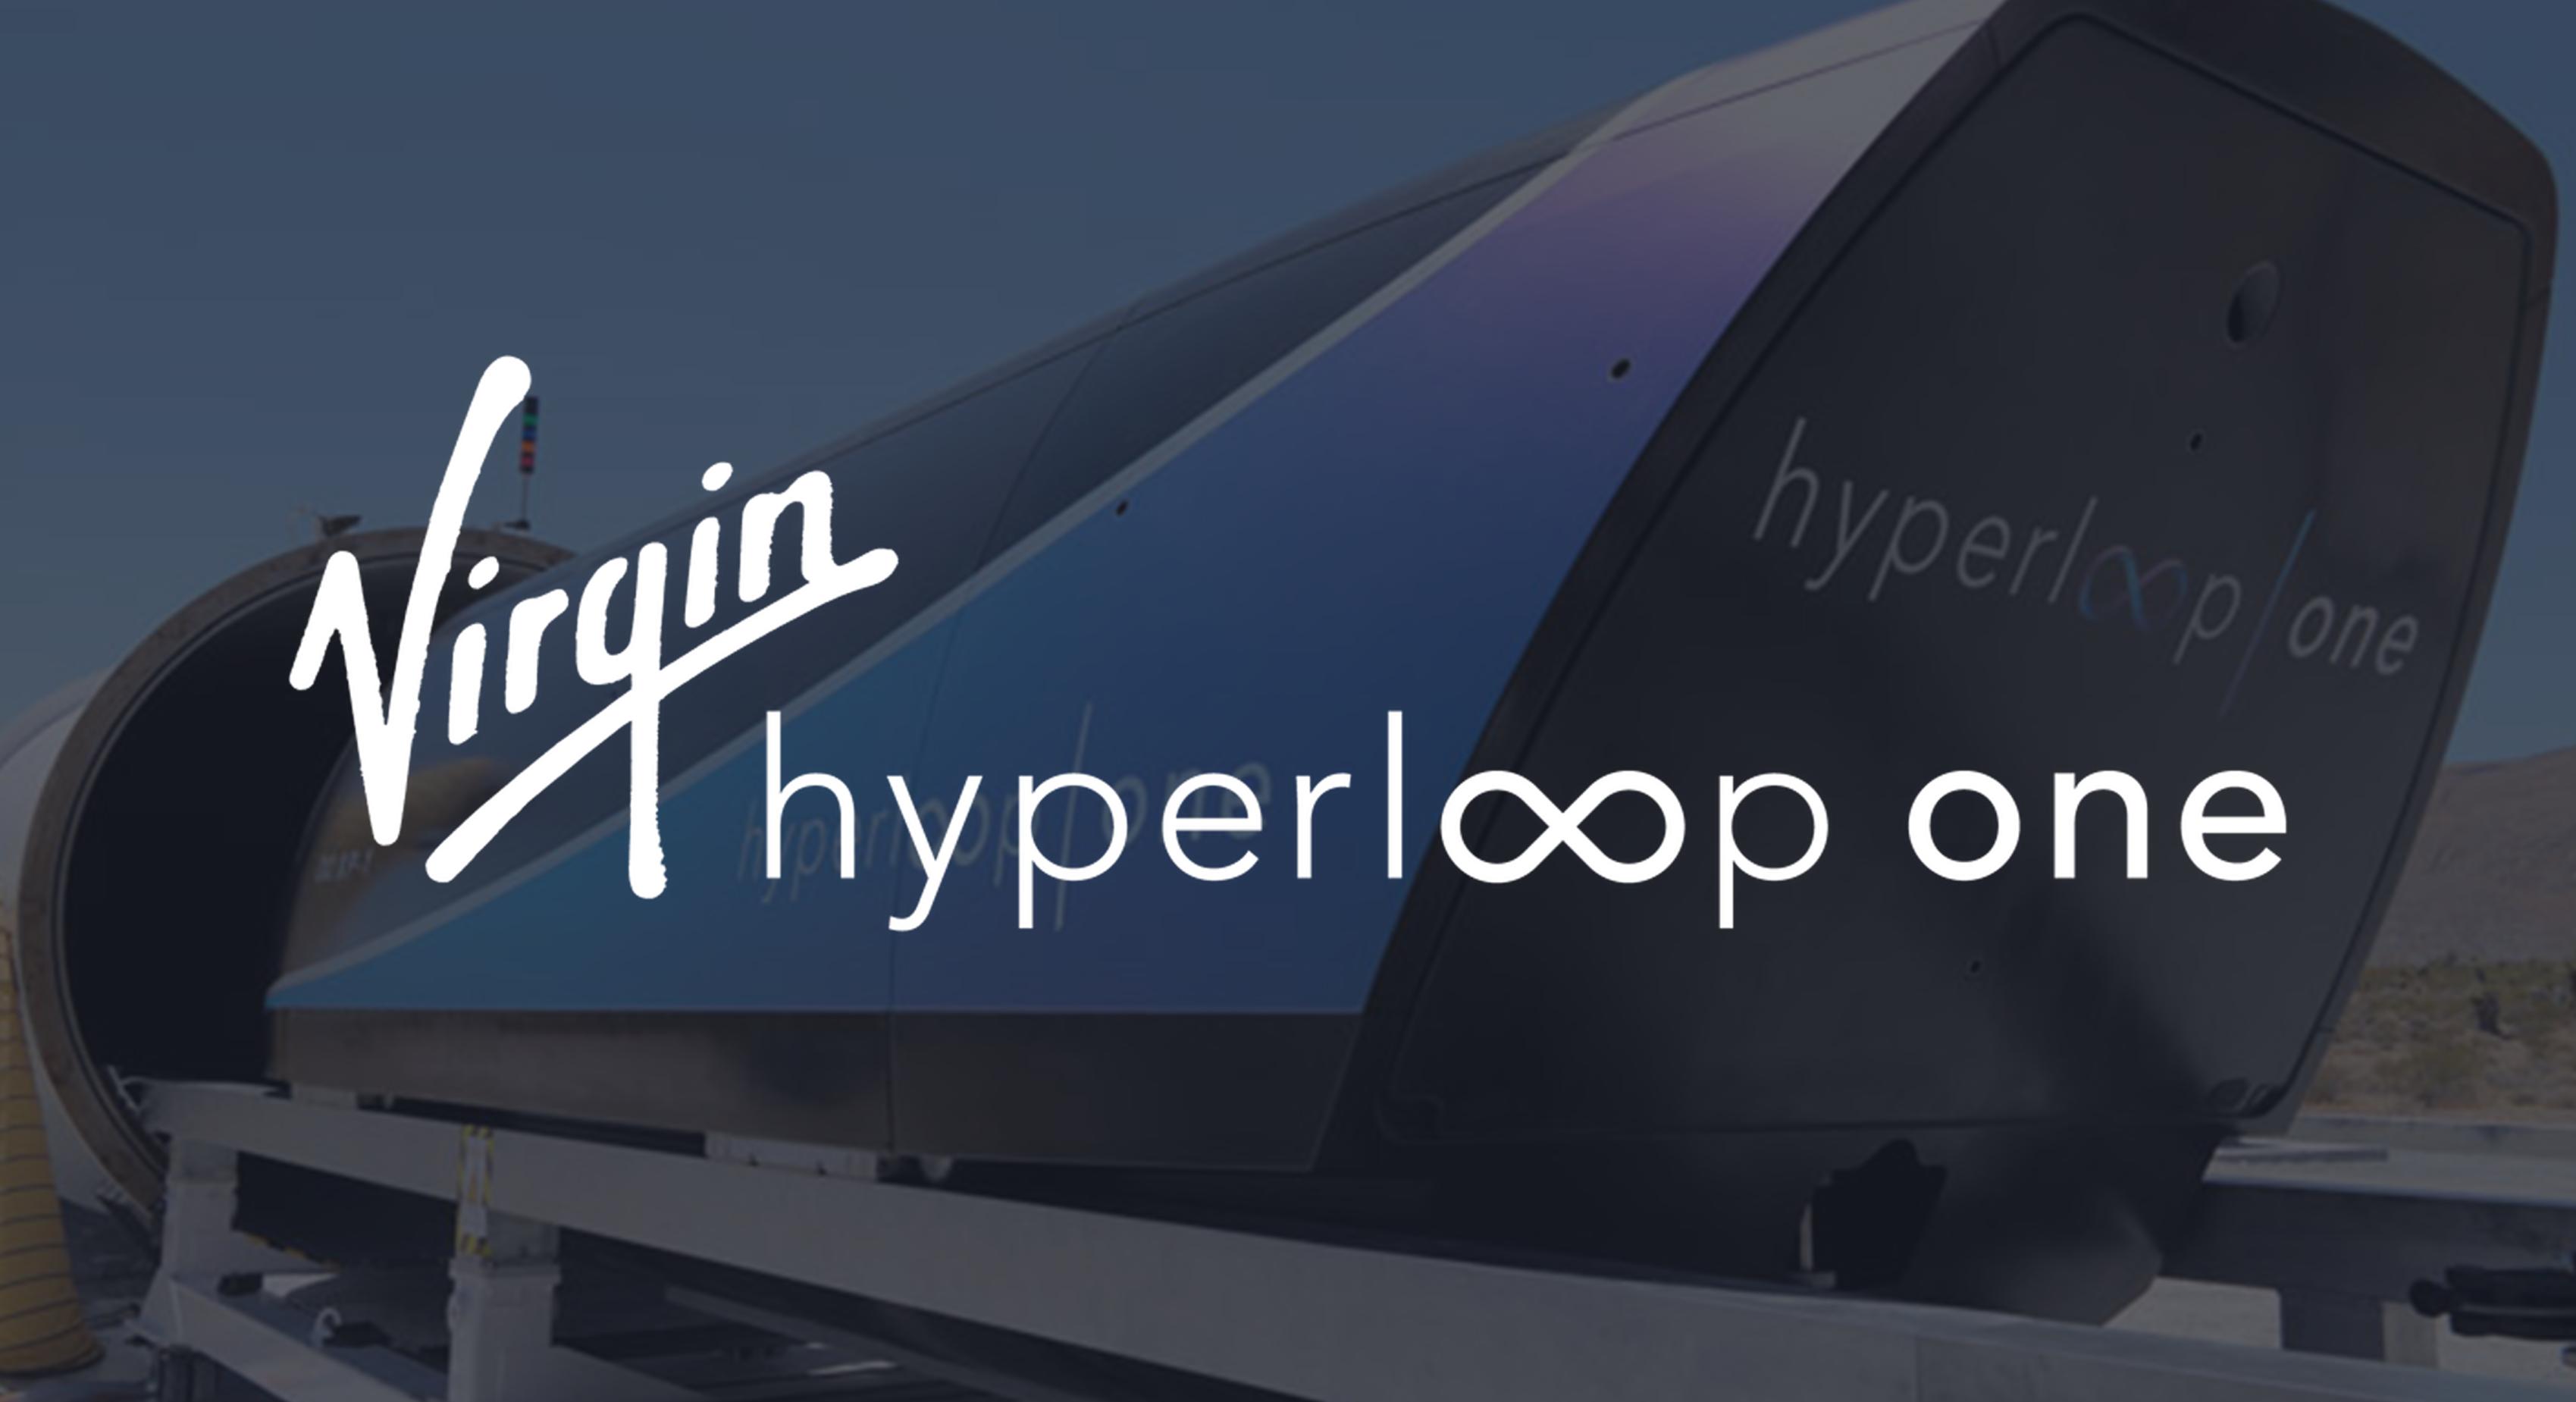 Virgin Hyperloop Protects Its Intellectual Property by Leveraging OneLogin